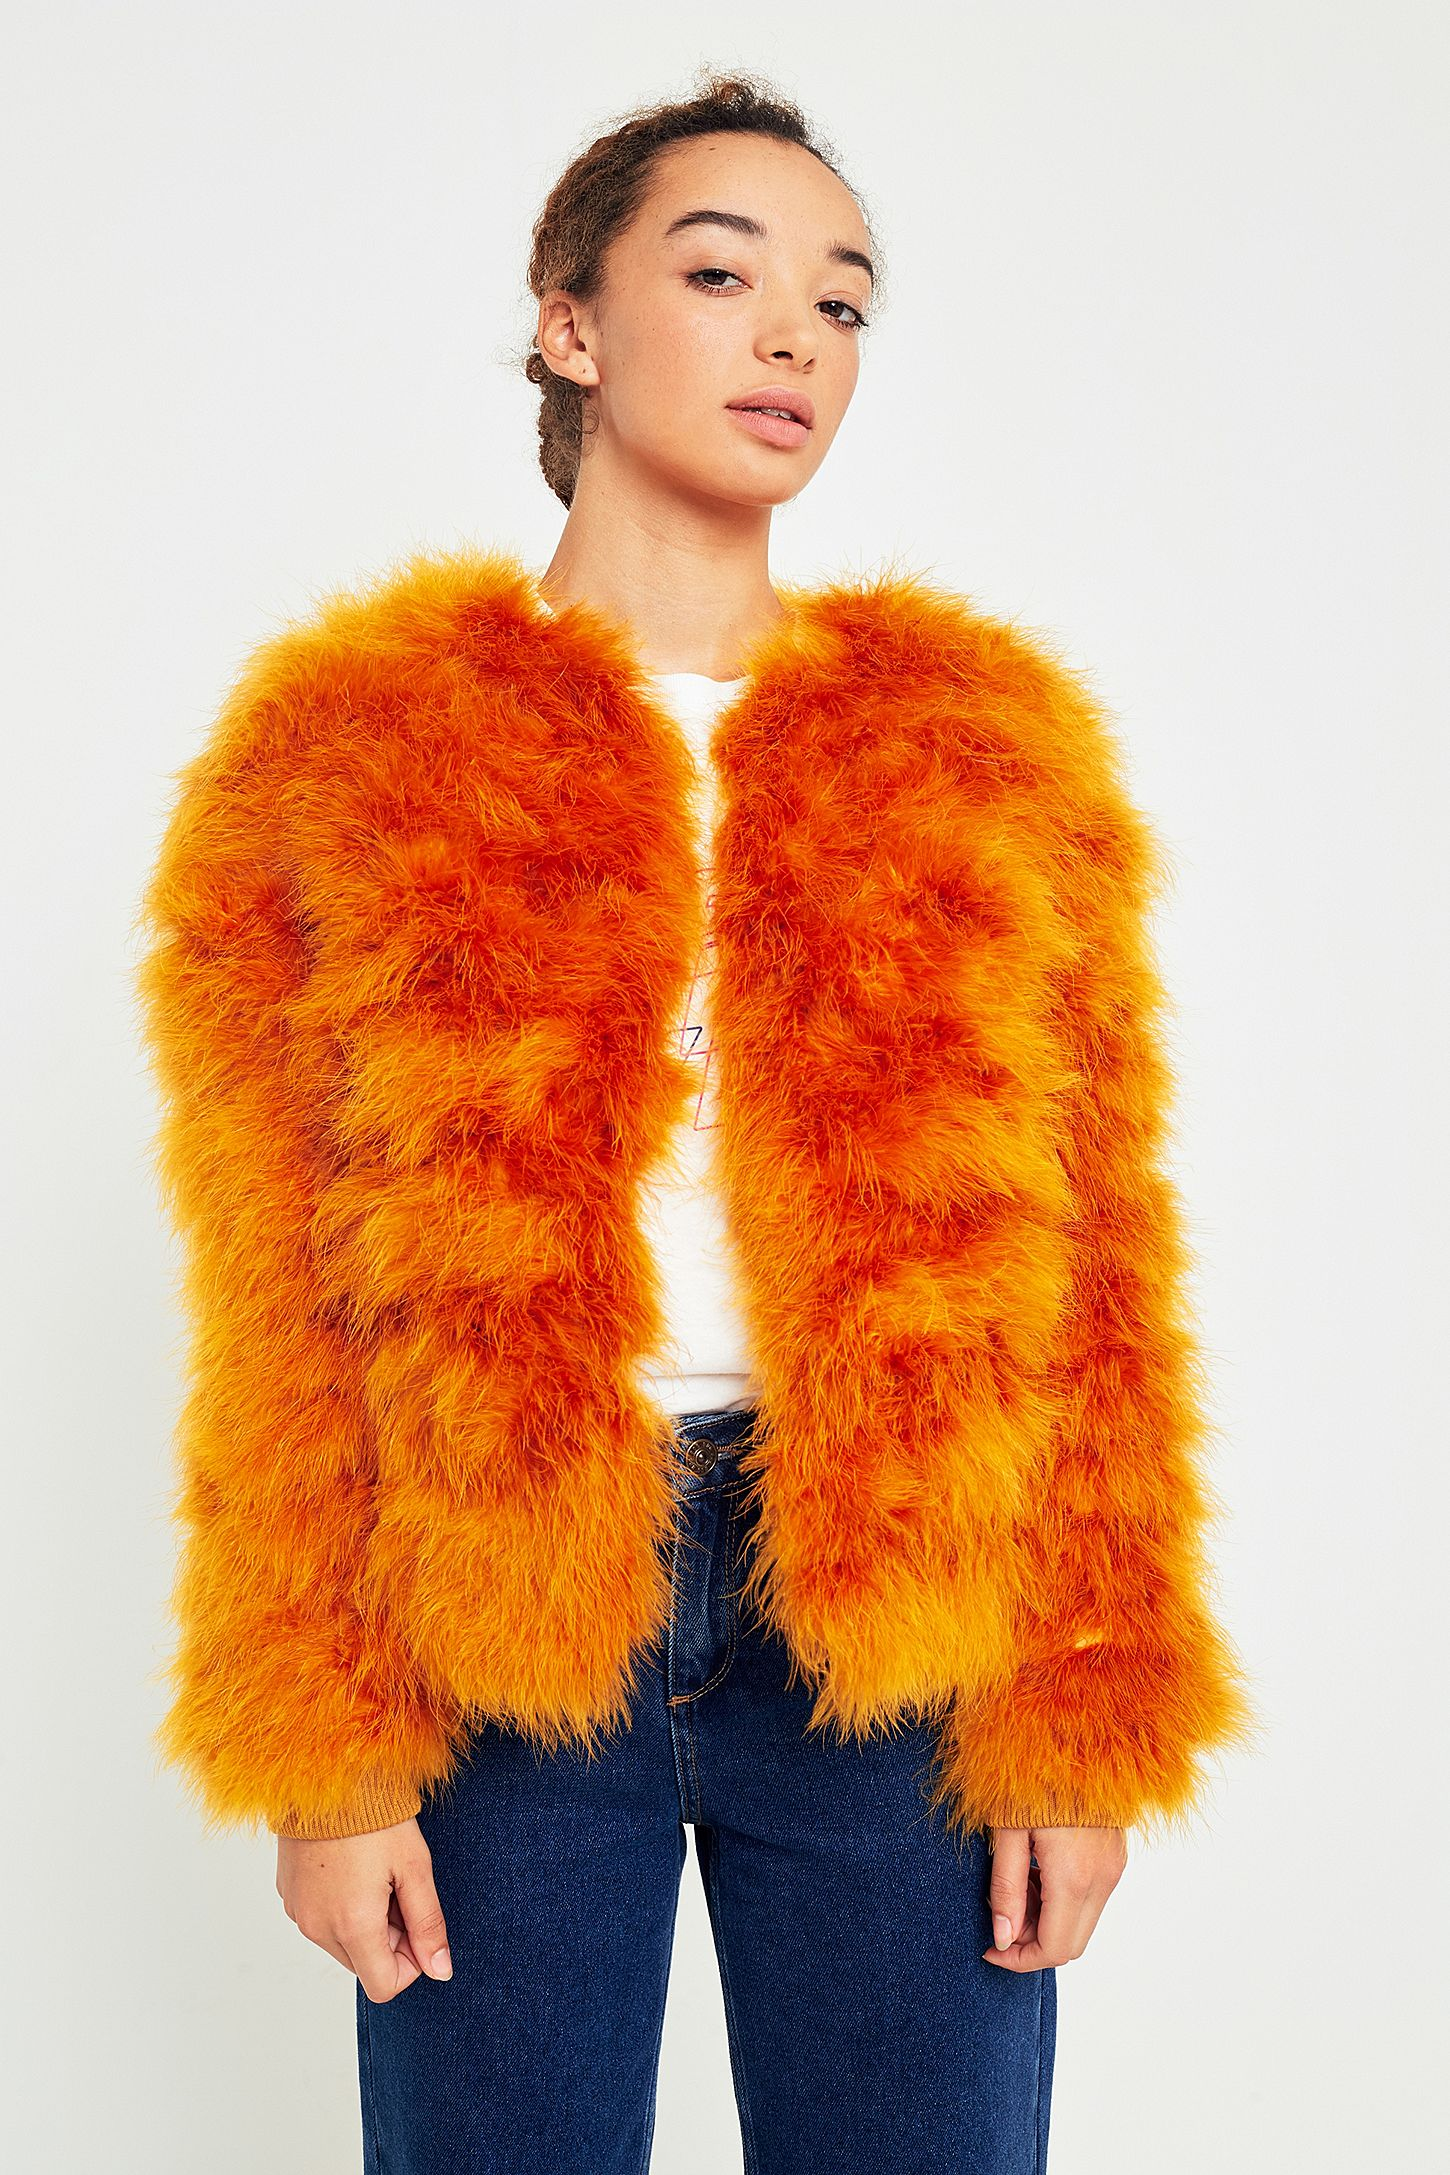 2b164f5e2faa Light Before Dark Orange Marabou Faux Fur Jacket